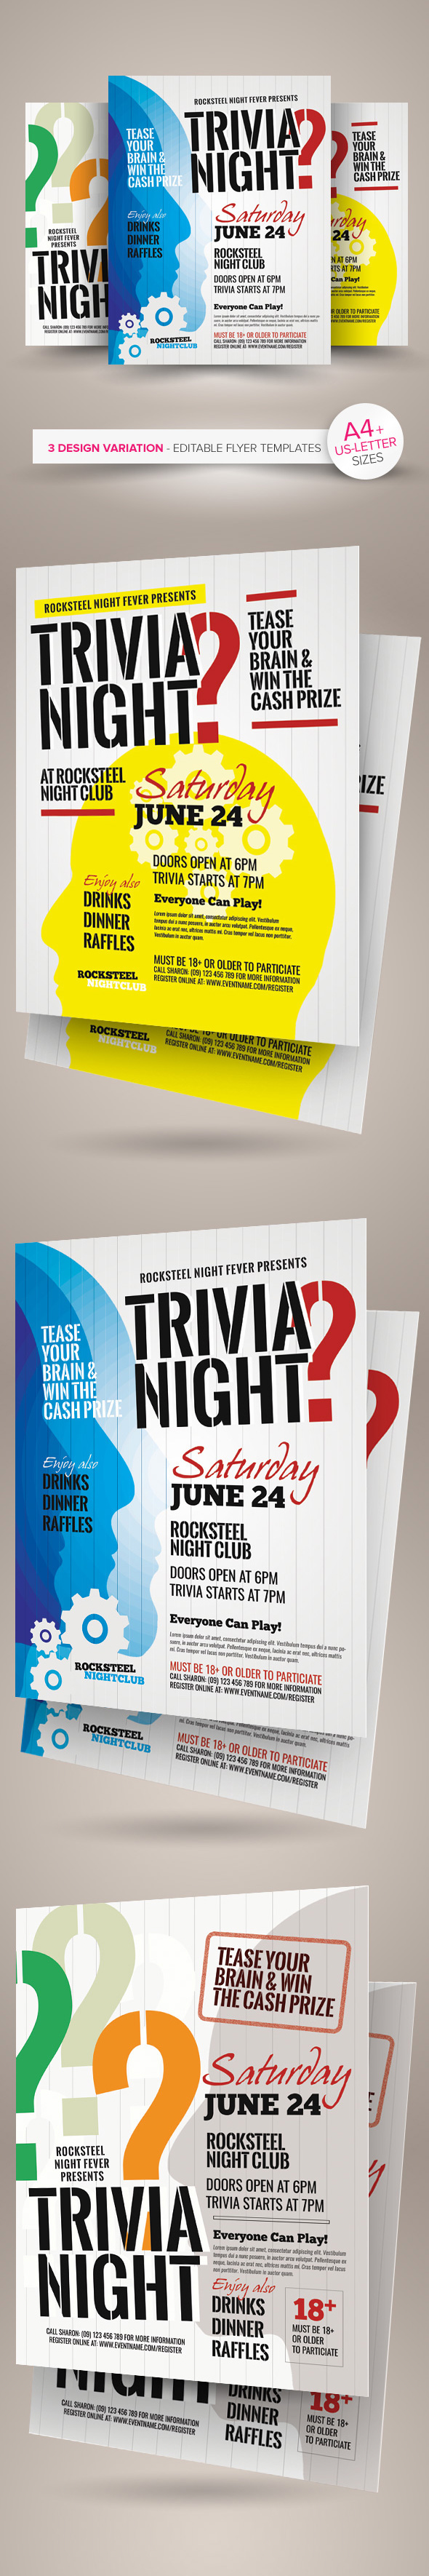 trivia night flyer templates on behance trivia night flyer templates are design templates created for on graphic river more info of the templates and how to get the sourcefile can be found